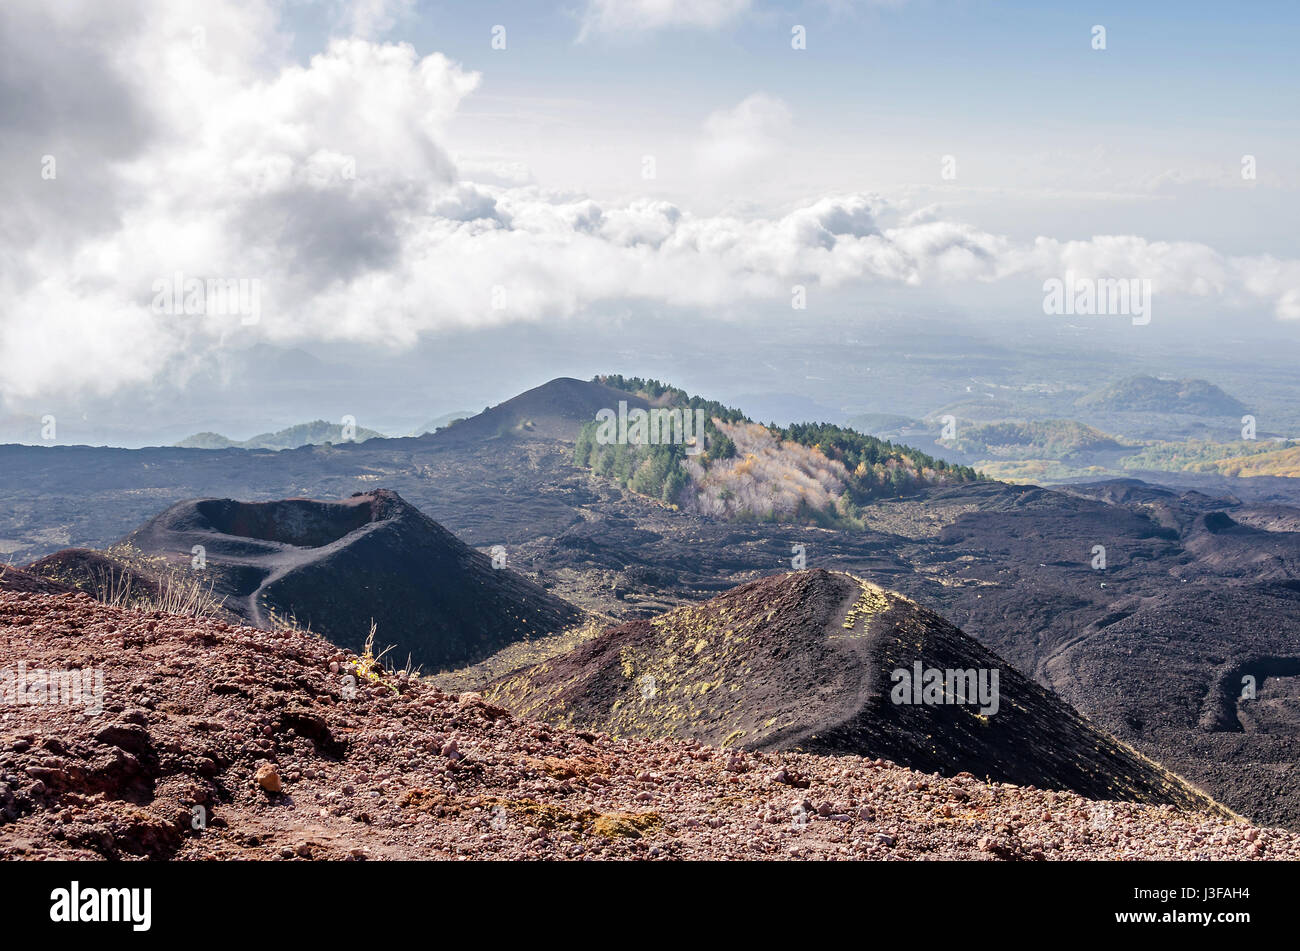 Slope of Mount Etna, an active stratovolcano on the east coast of Sicily, Italy, below summit showing lateral cones, - Stock Image